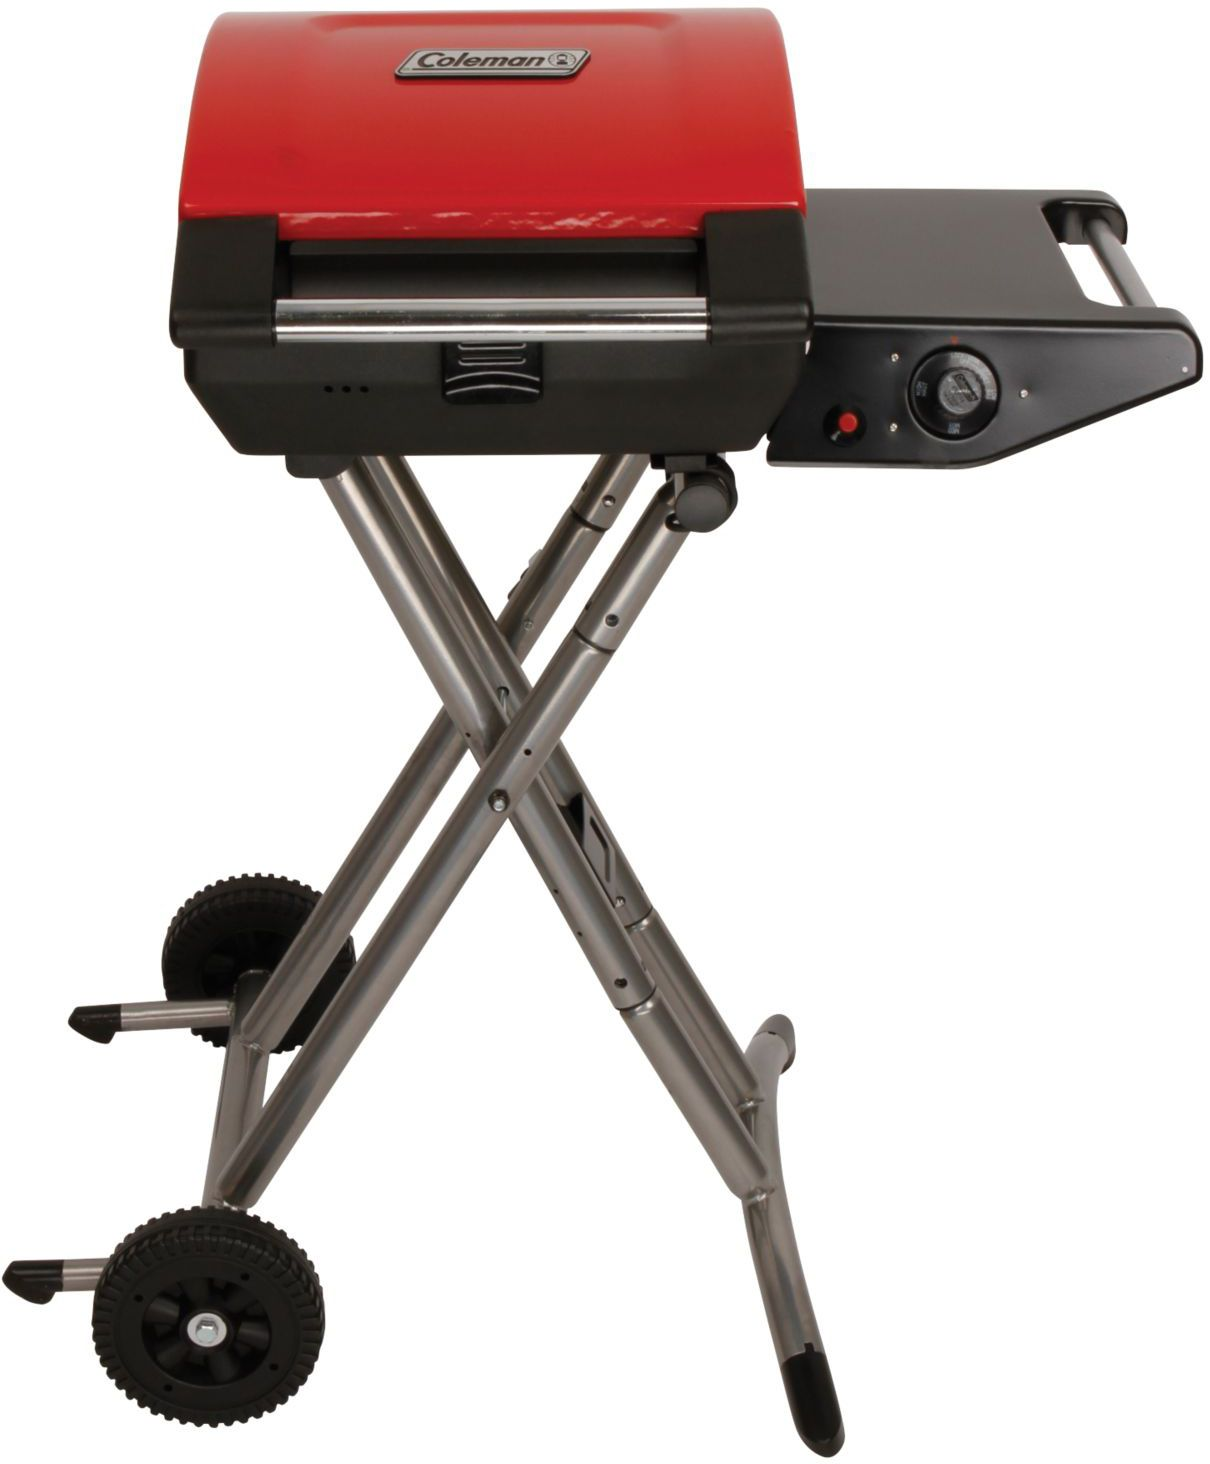 gas charcoal u0026 portable outdoor grills u0027s sporting goods